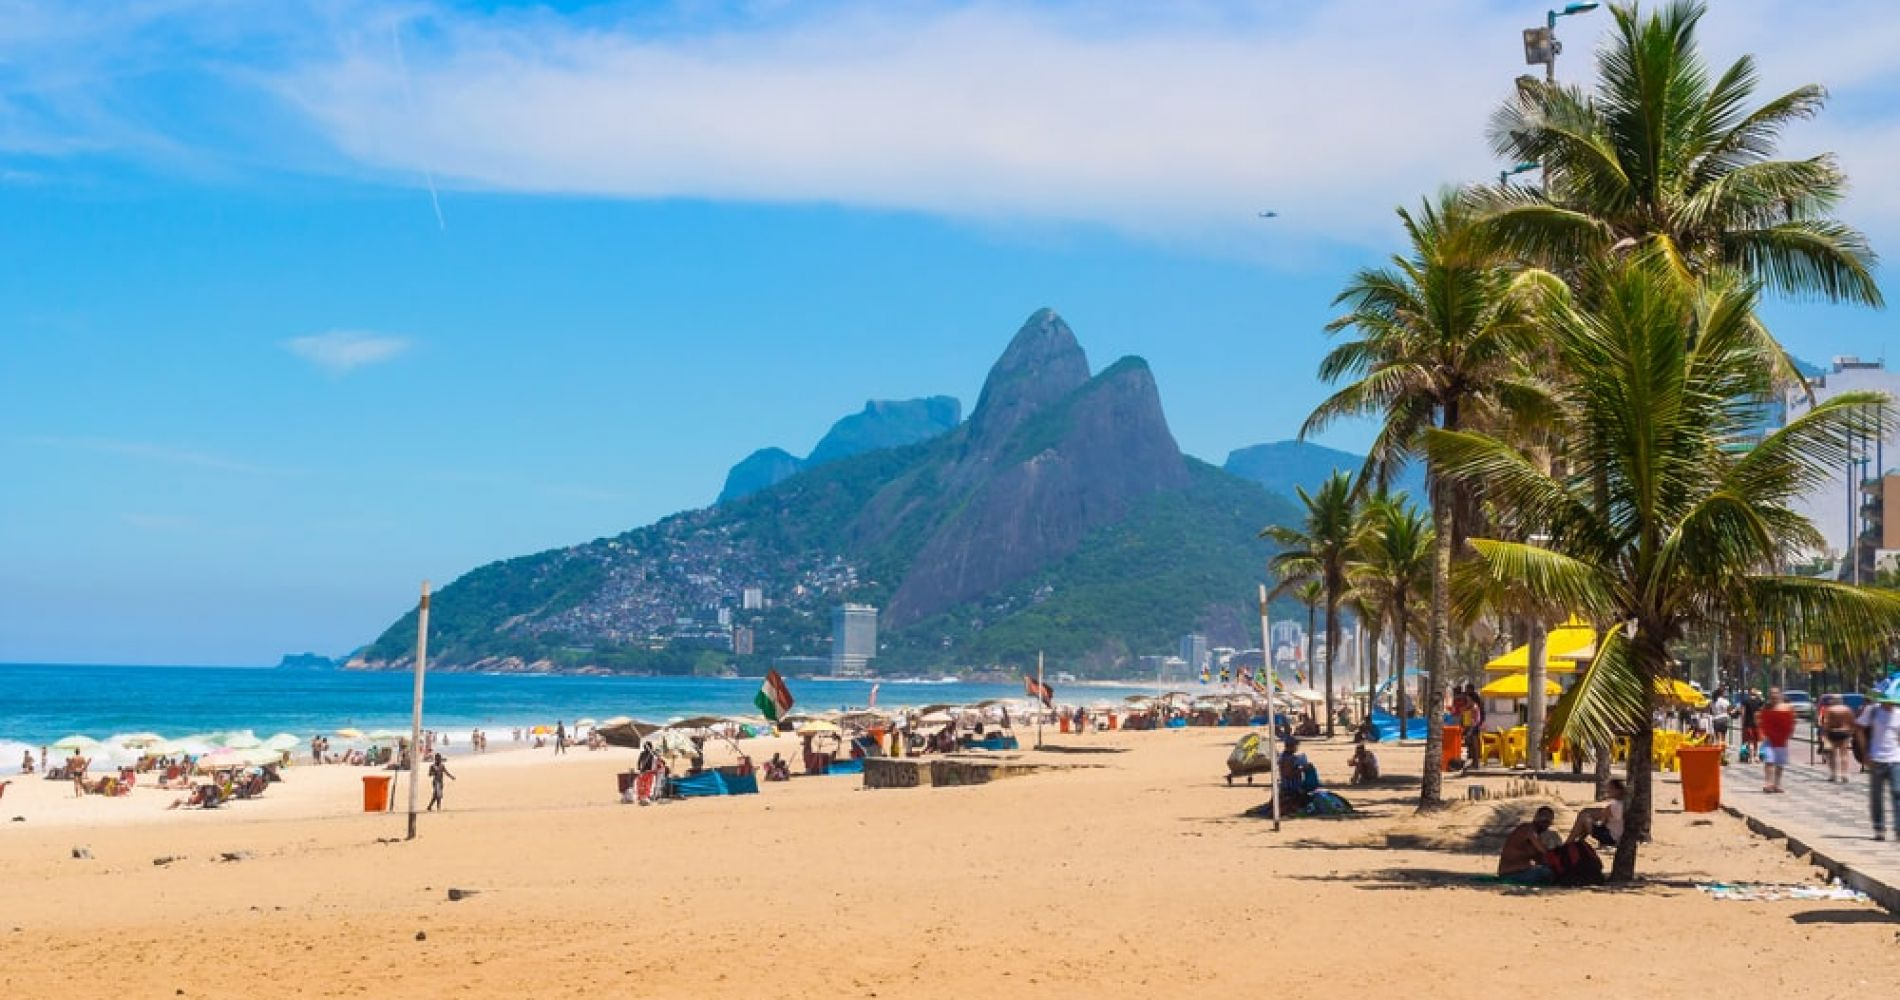 Have a Beach Day in Rio